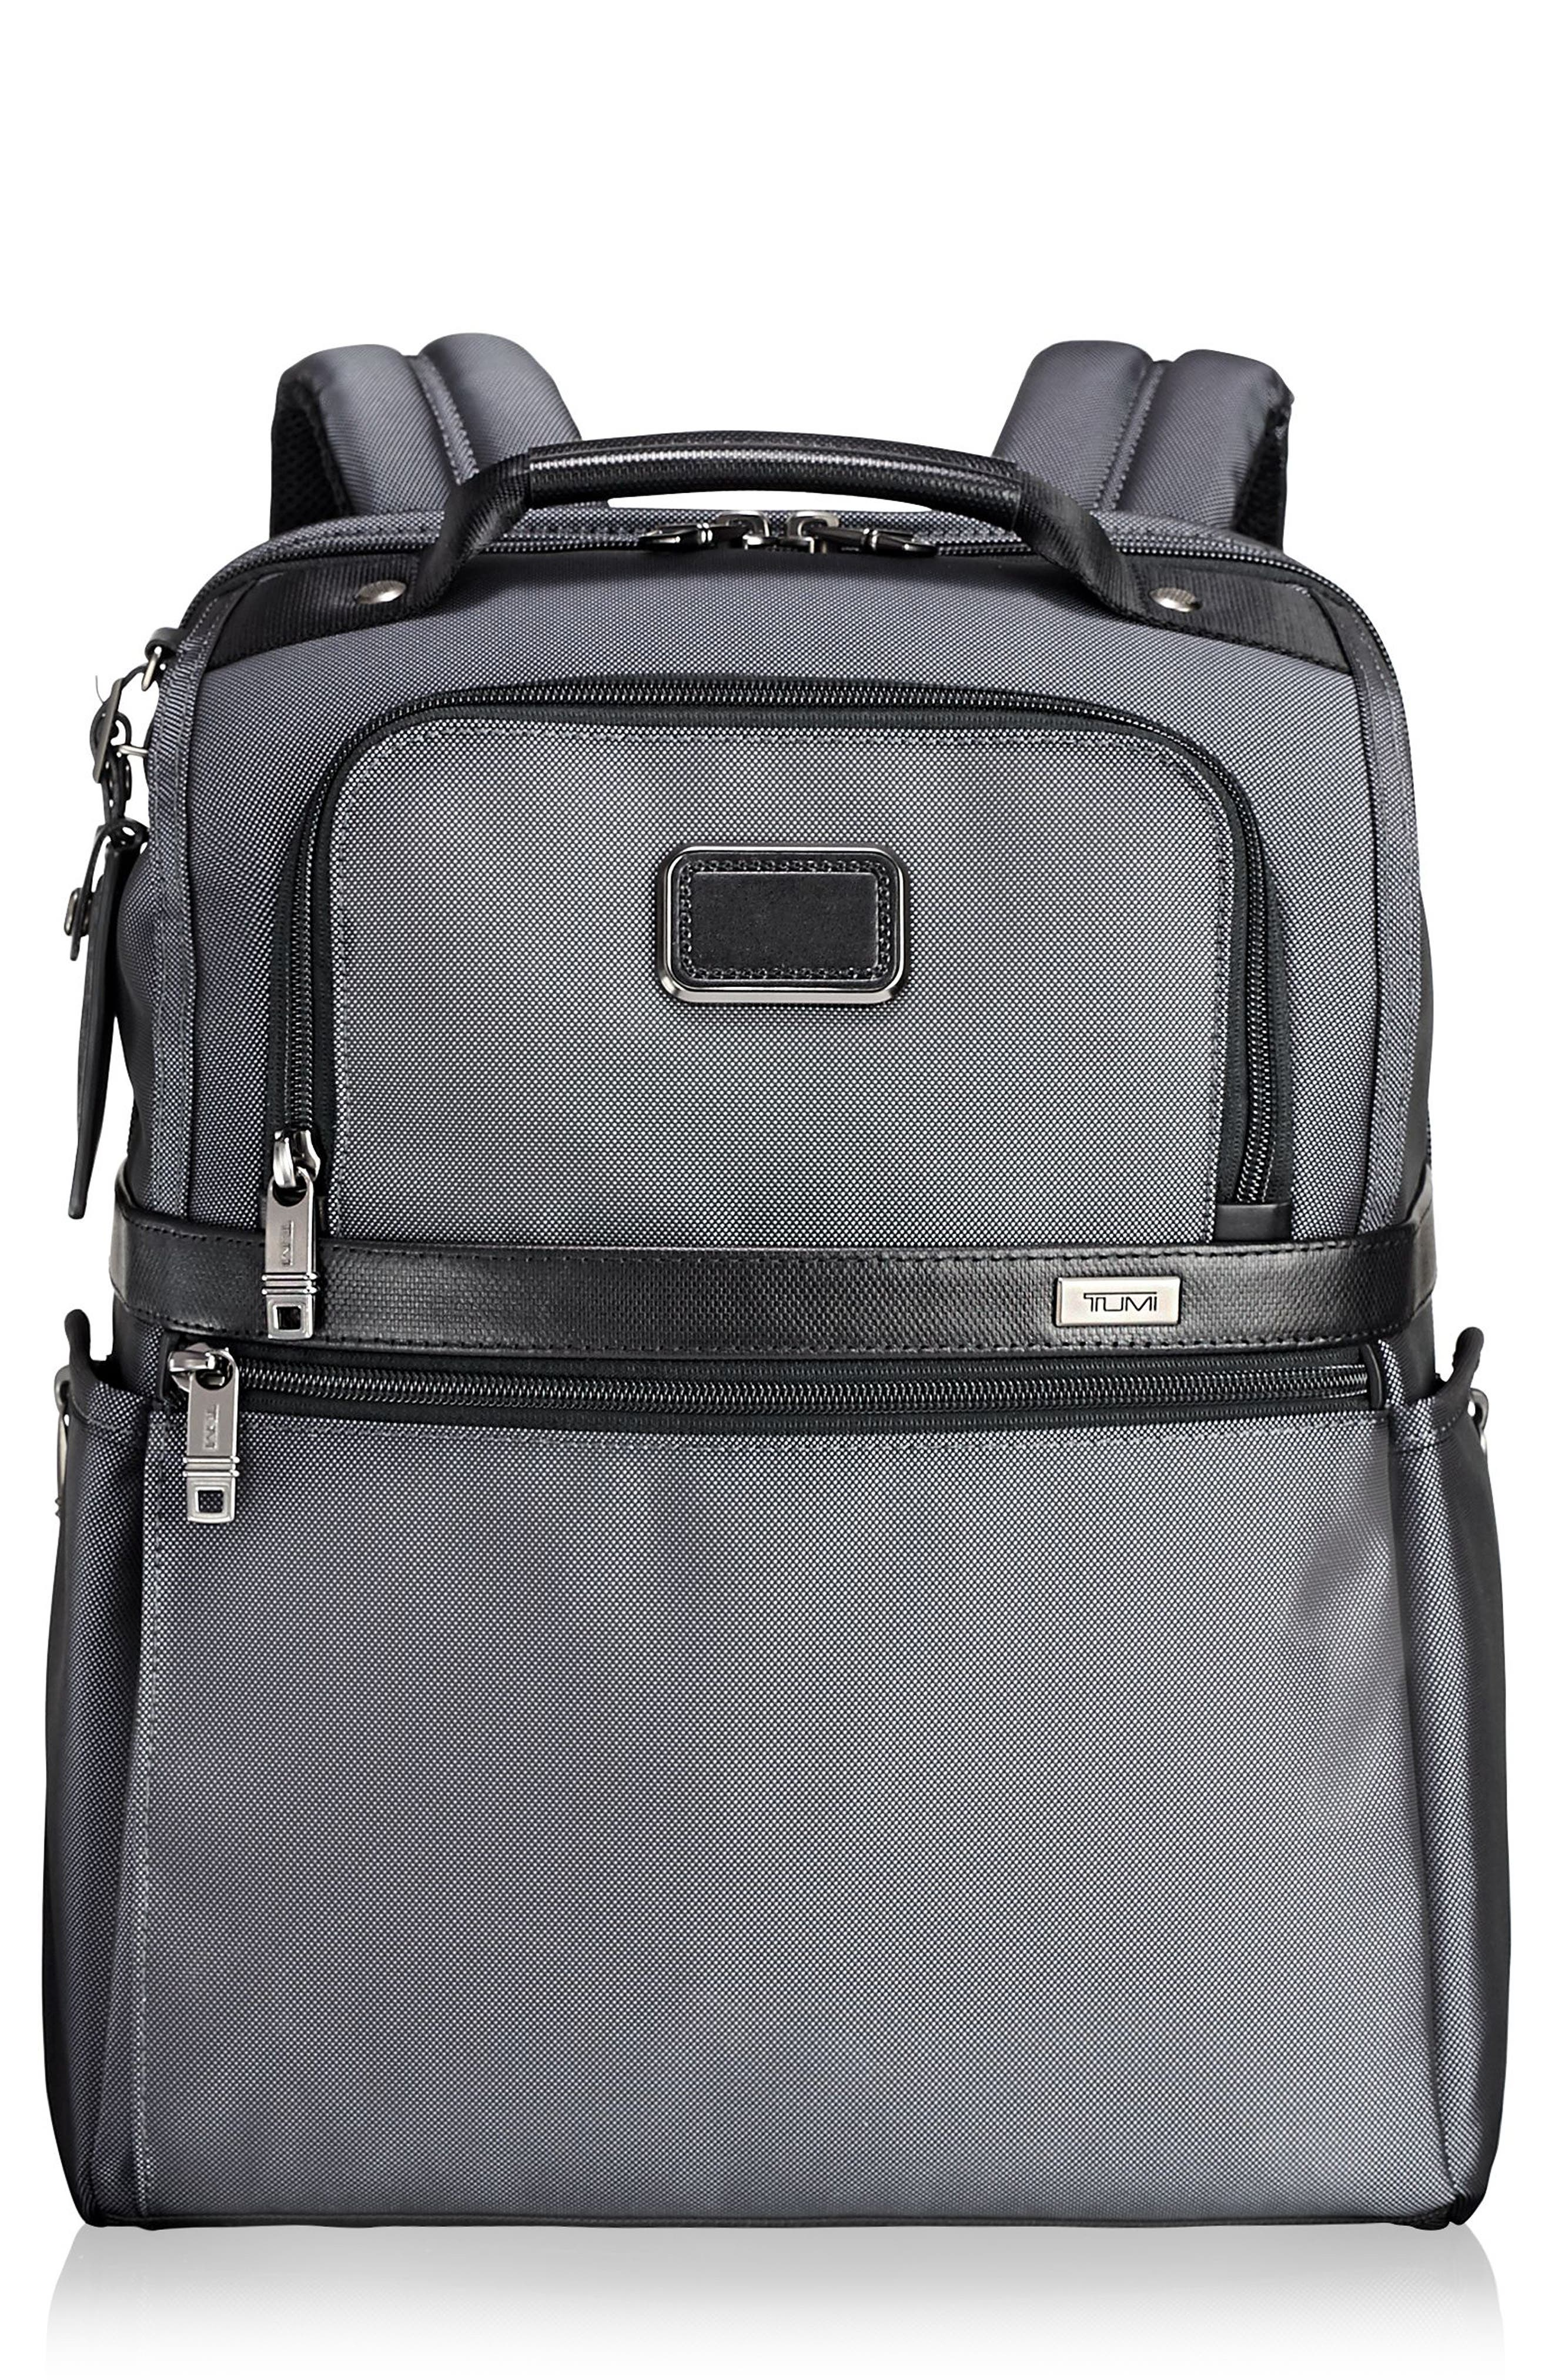 TUMI Alpha 2 - Brief Pack - Grey in Pewter